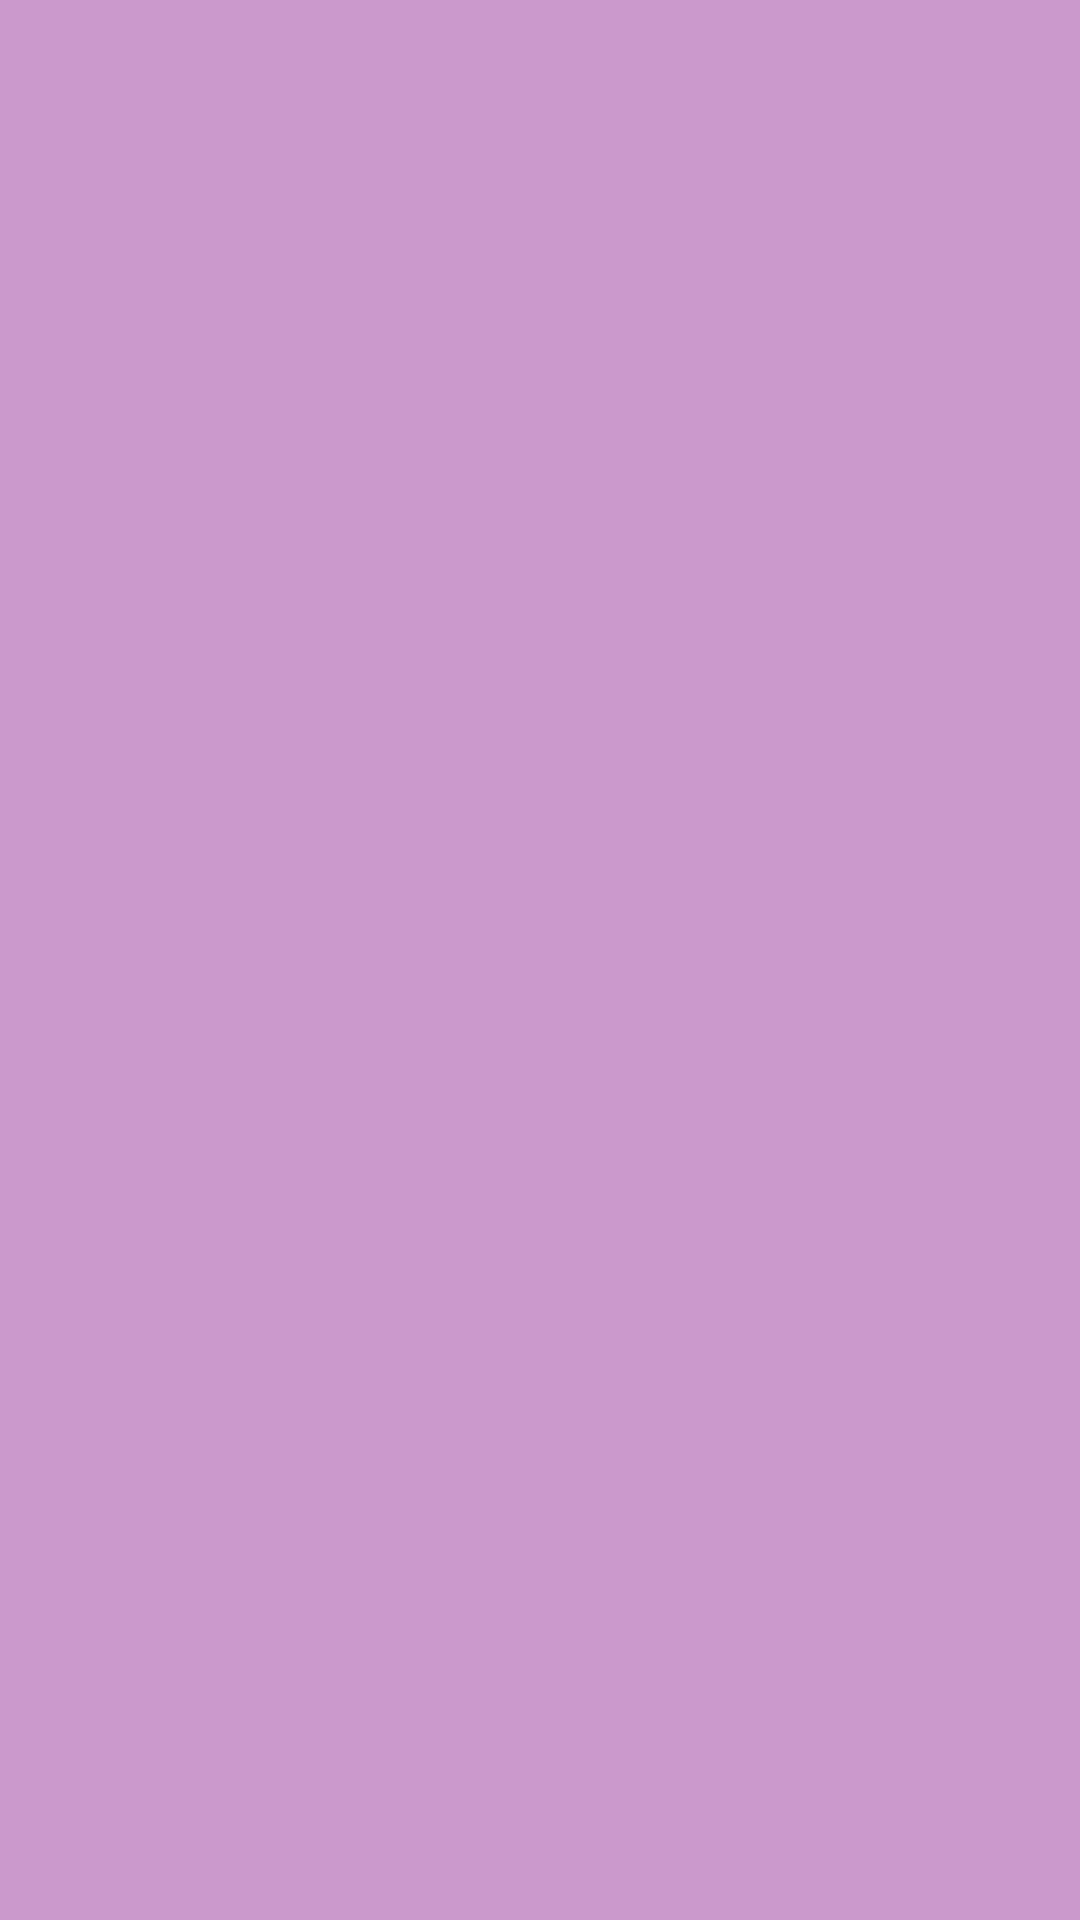 1080x1920 Pastel Violet Solid Color Background